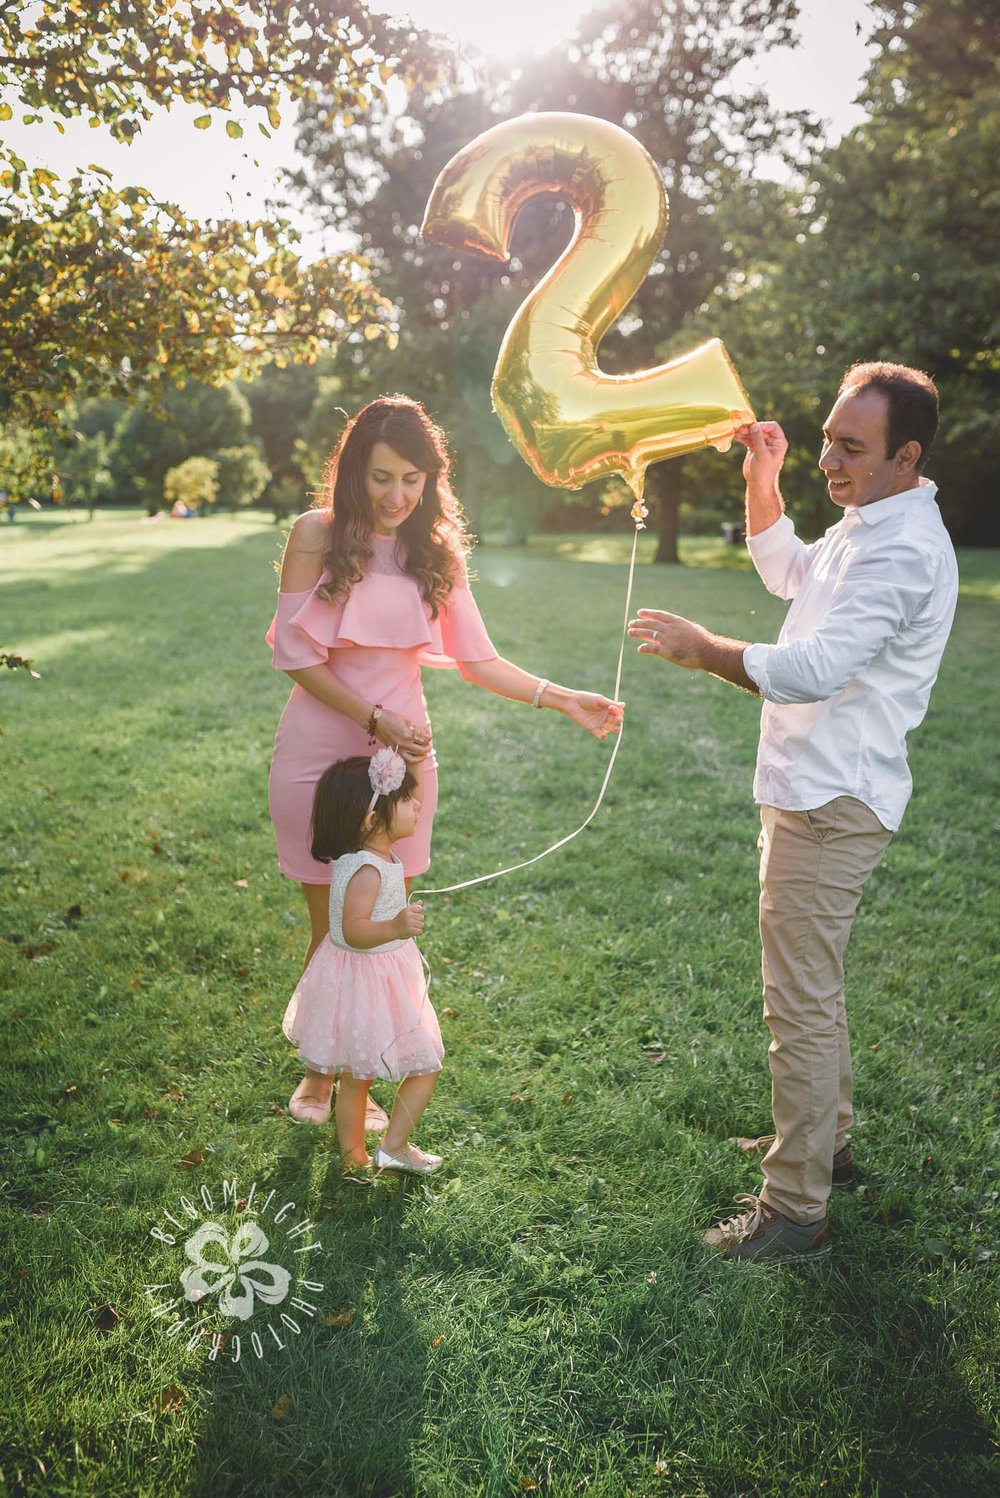 Second-Birthday-Outdoor-photo-Toronto-and NorthYork-baby-and-family-photographer (7).jpg